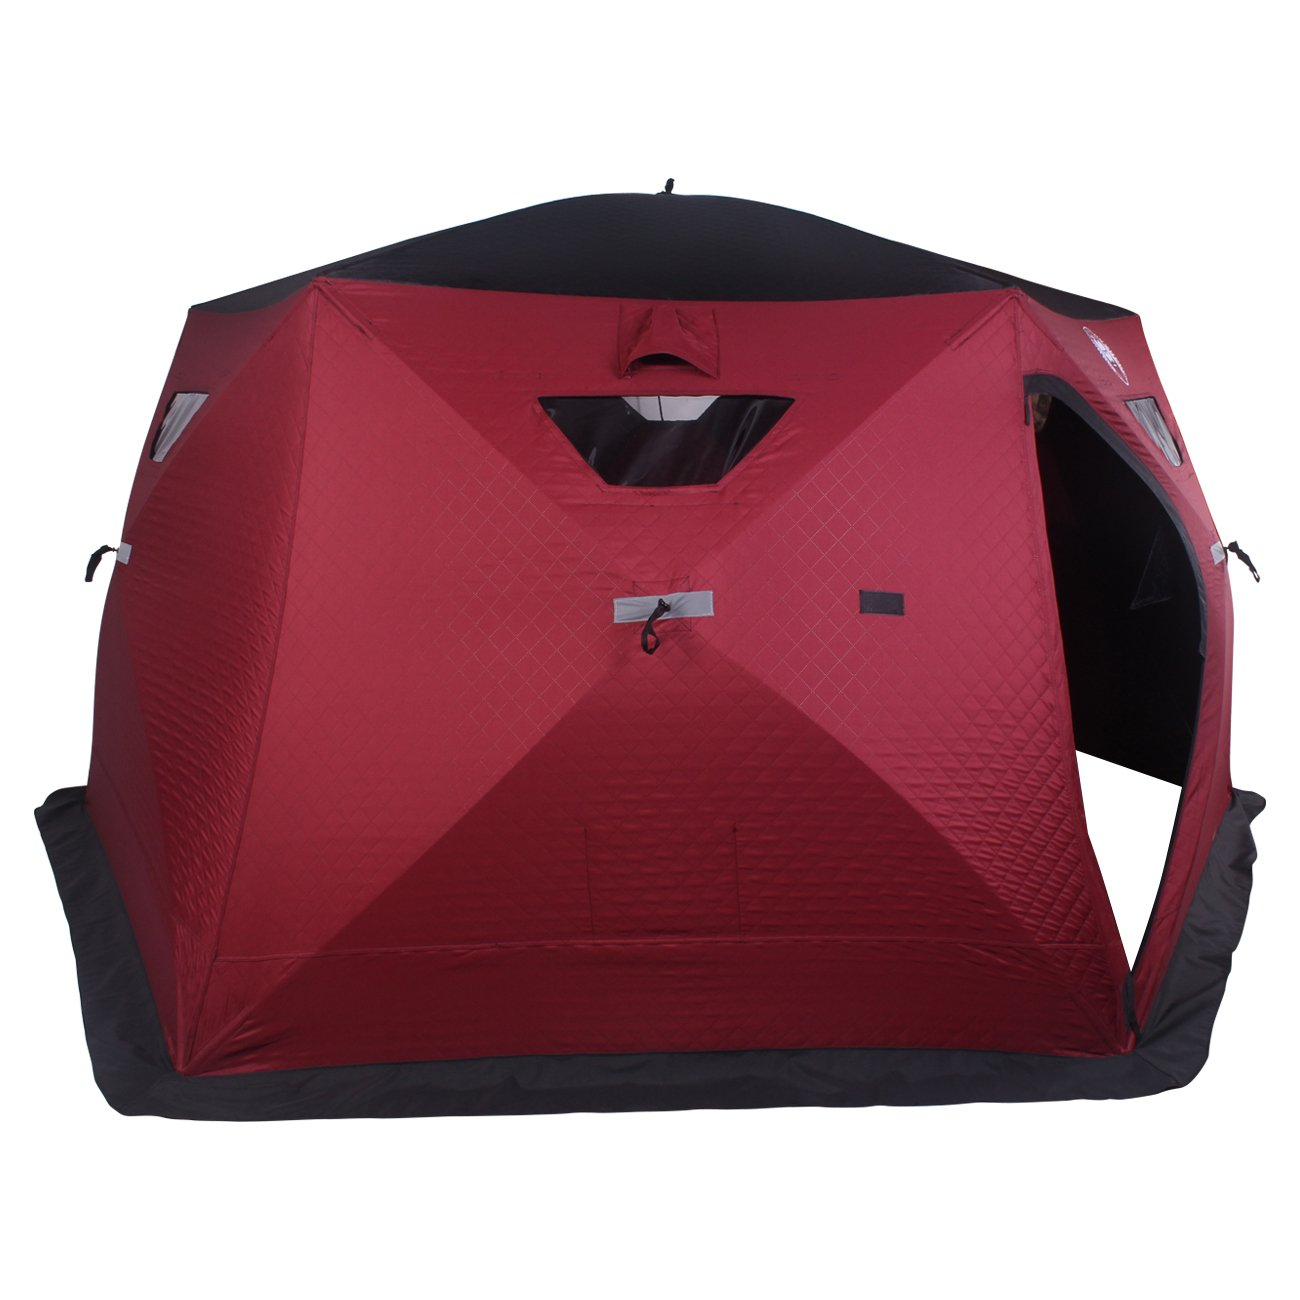 Nordic Legend Hex-Hub 6 to 8 Man Portable Thermal Ice Shelter